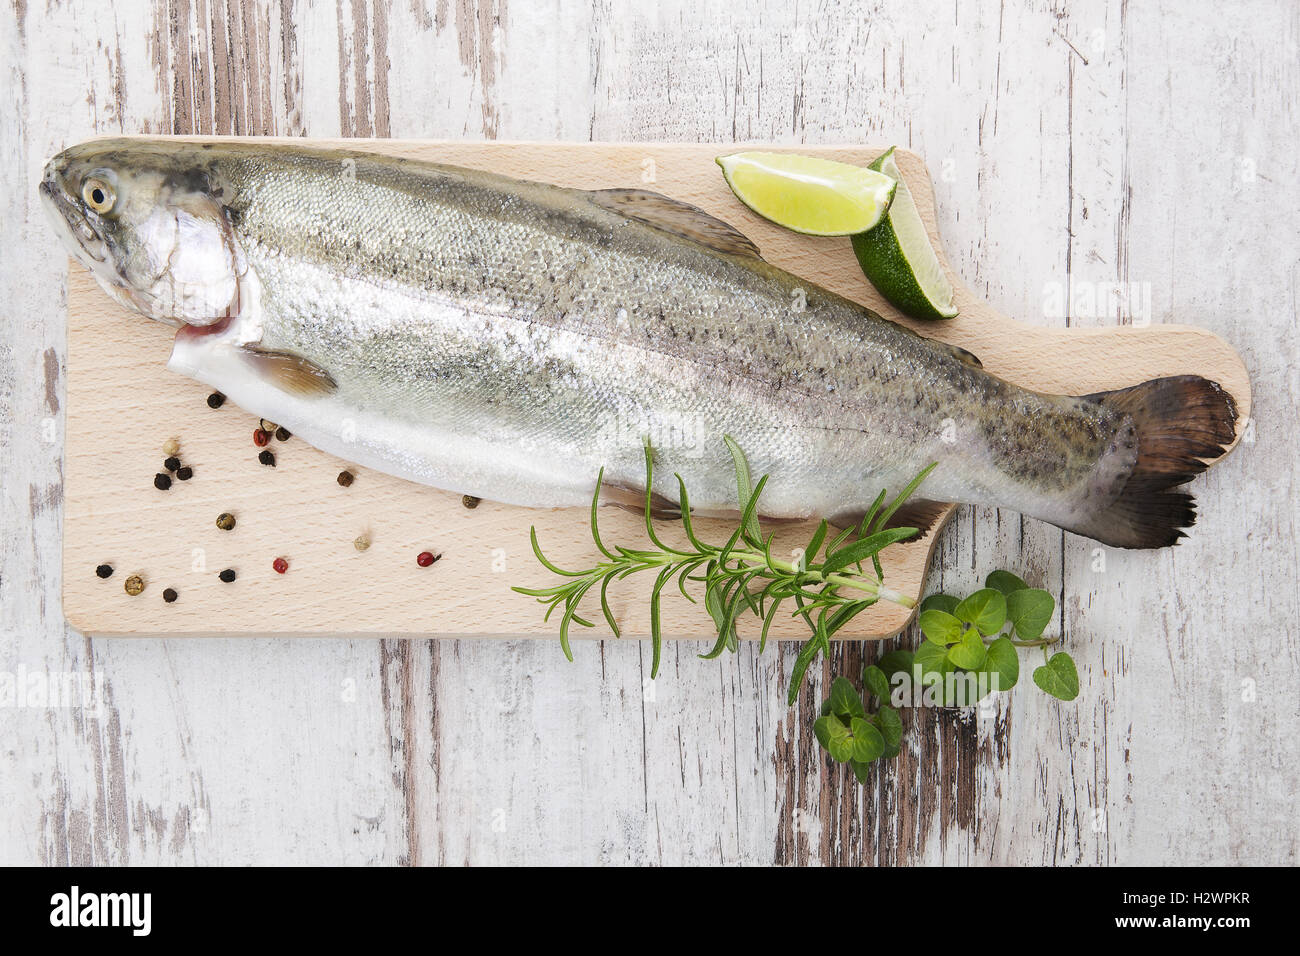 Trout on wooden kitchen board. - Stock Image